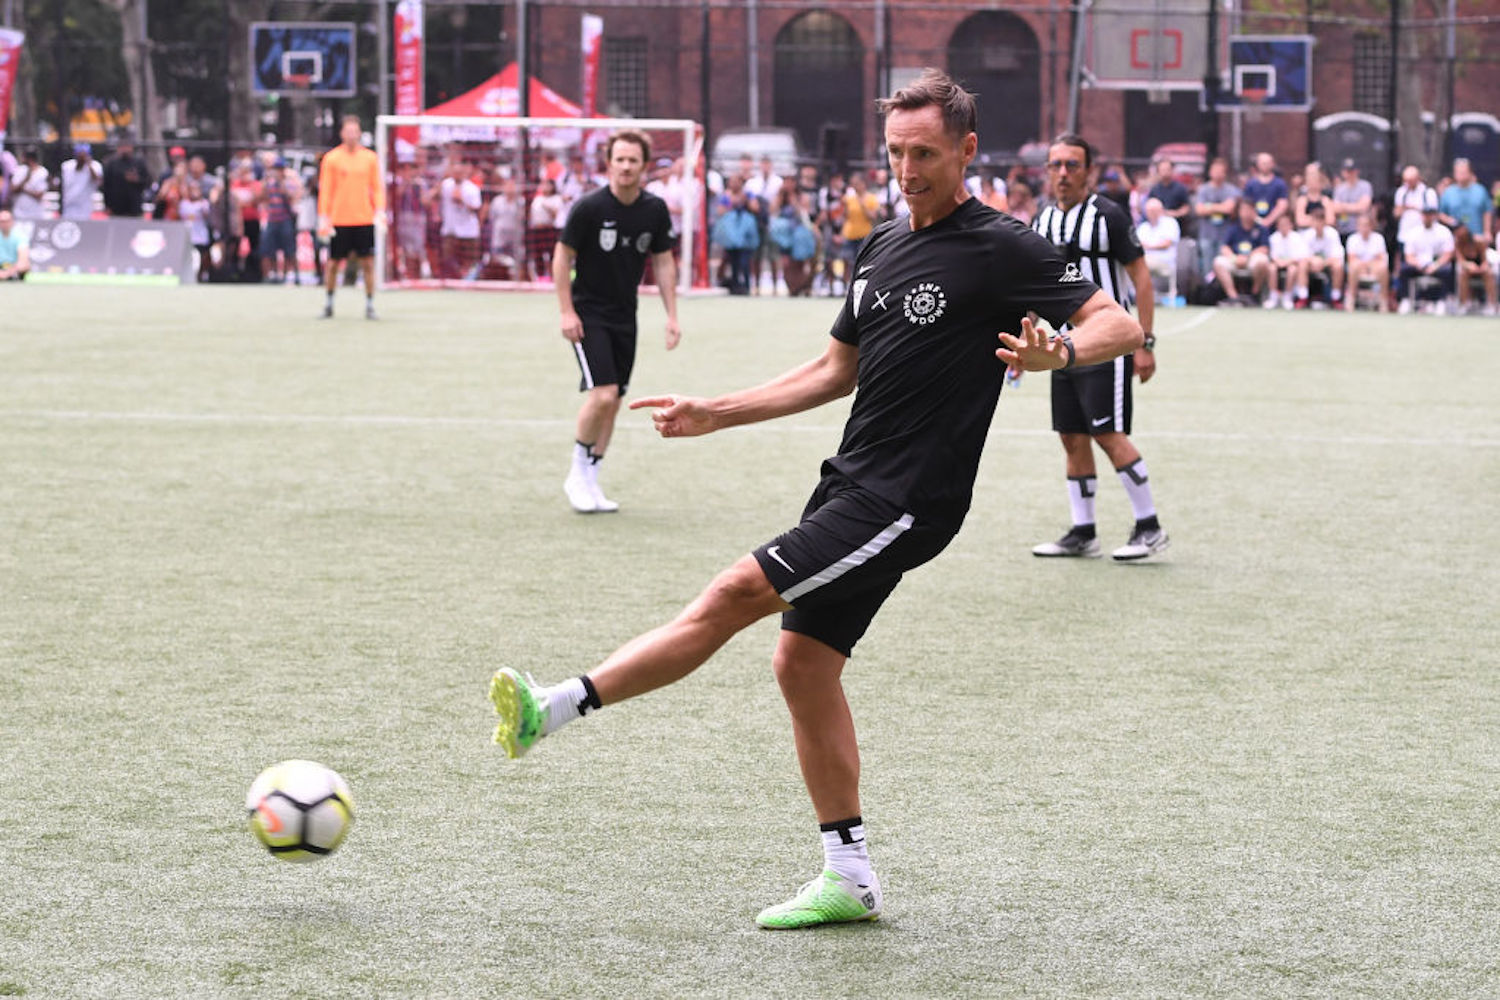 Steve Nash was a talented soccer player growing up, and he almost bailed on basketball to pursue a professional career on the pitch.